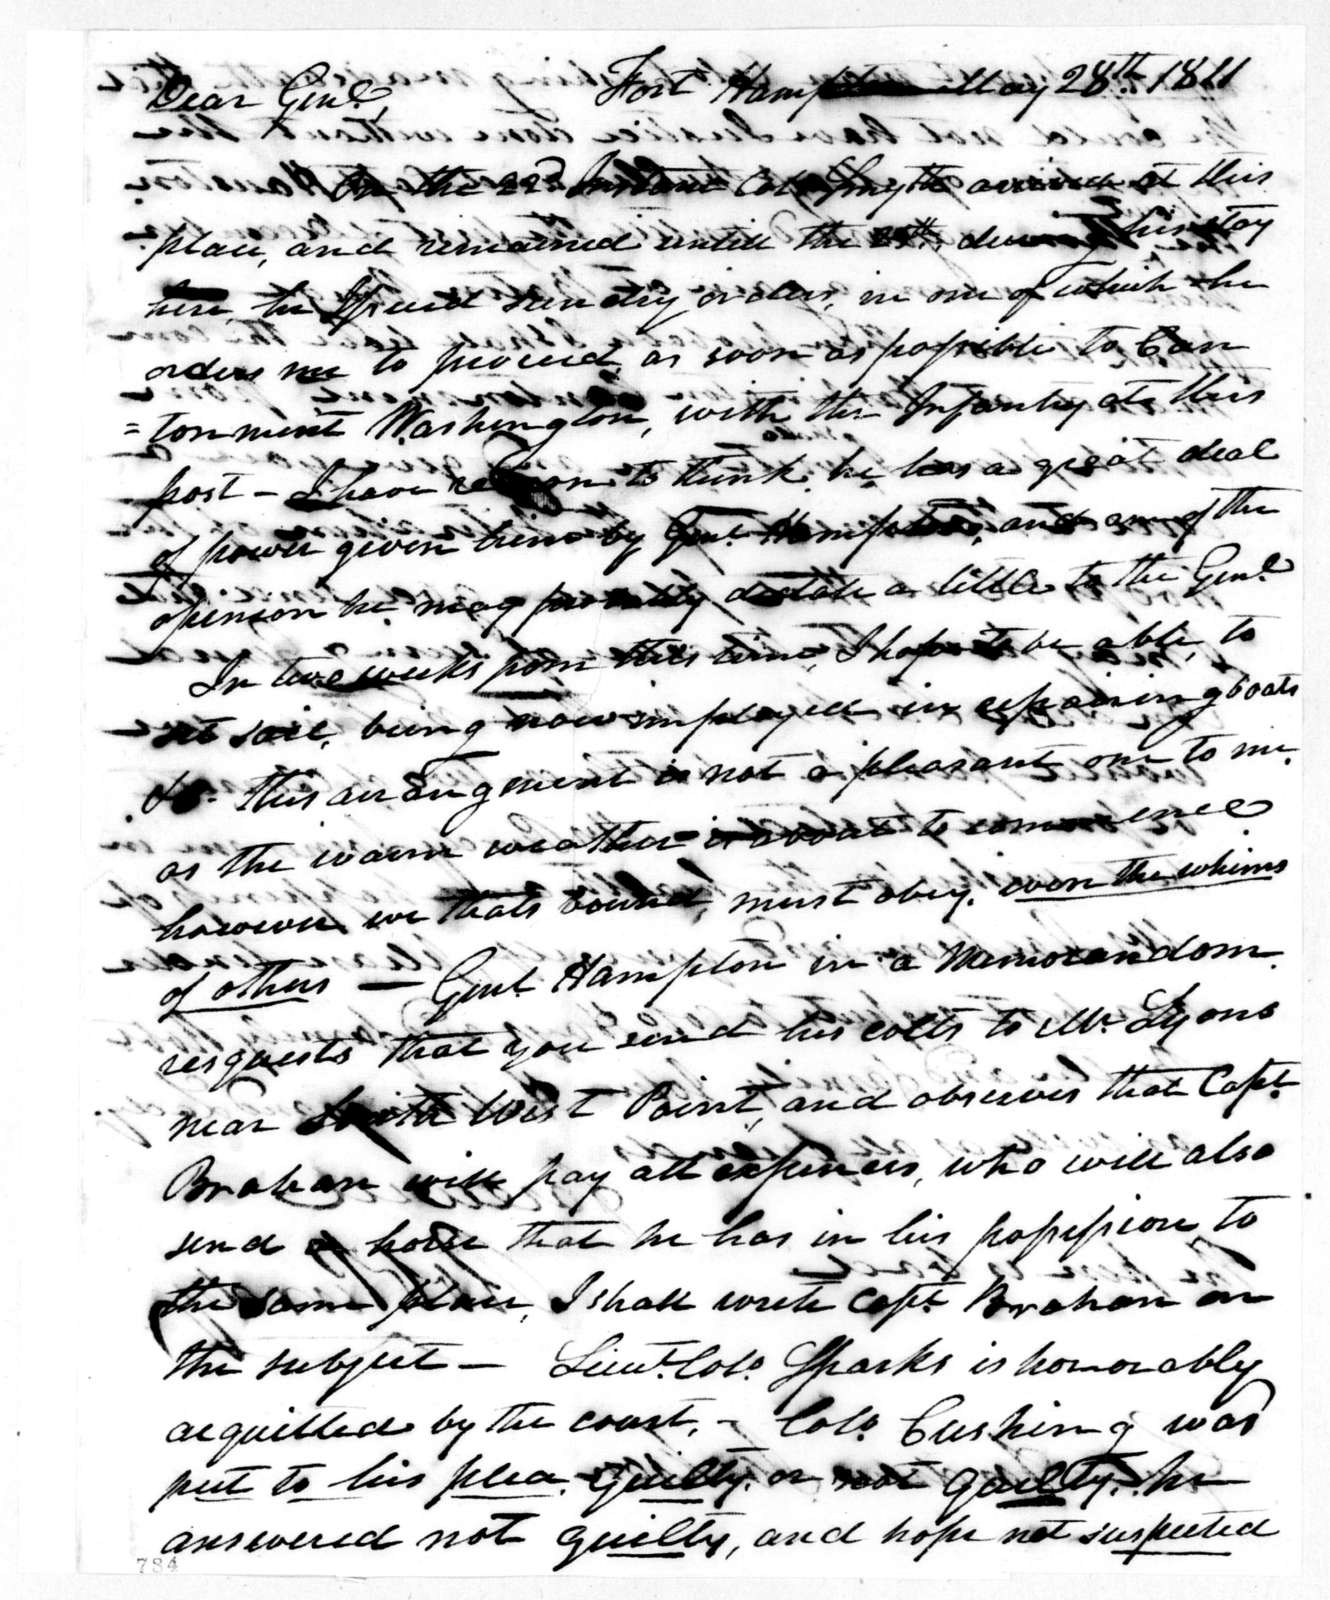 Robert Purdy to Andrew Jackson, May 28, 1811